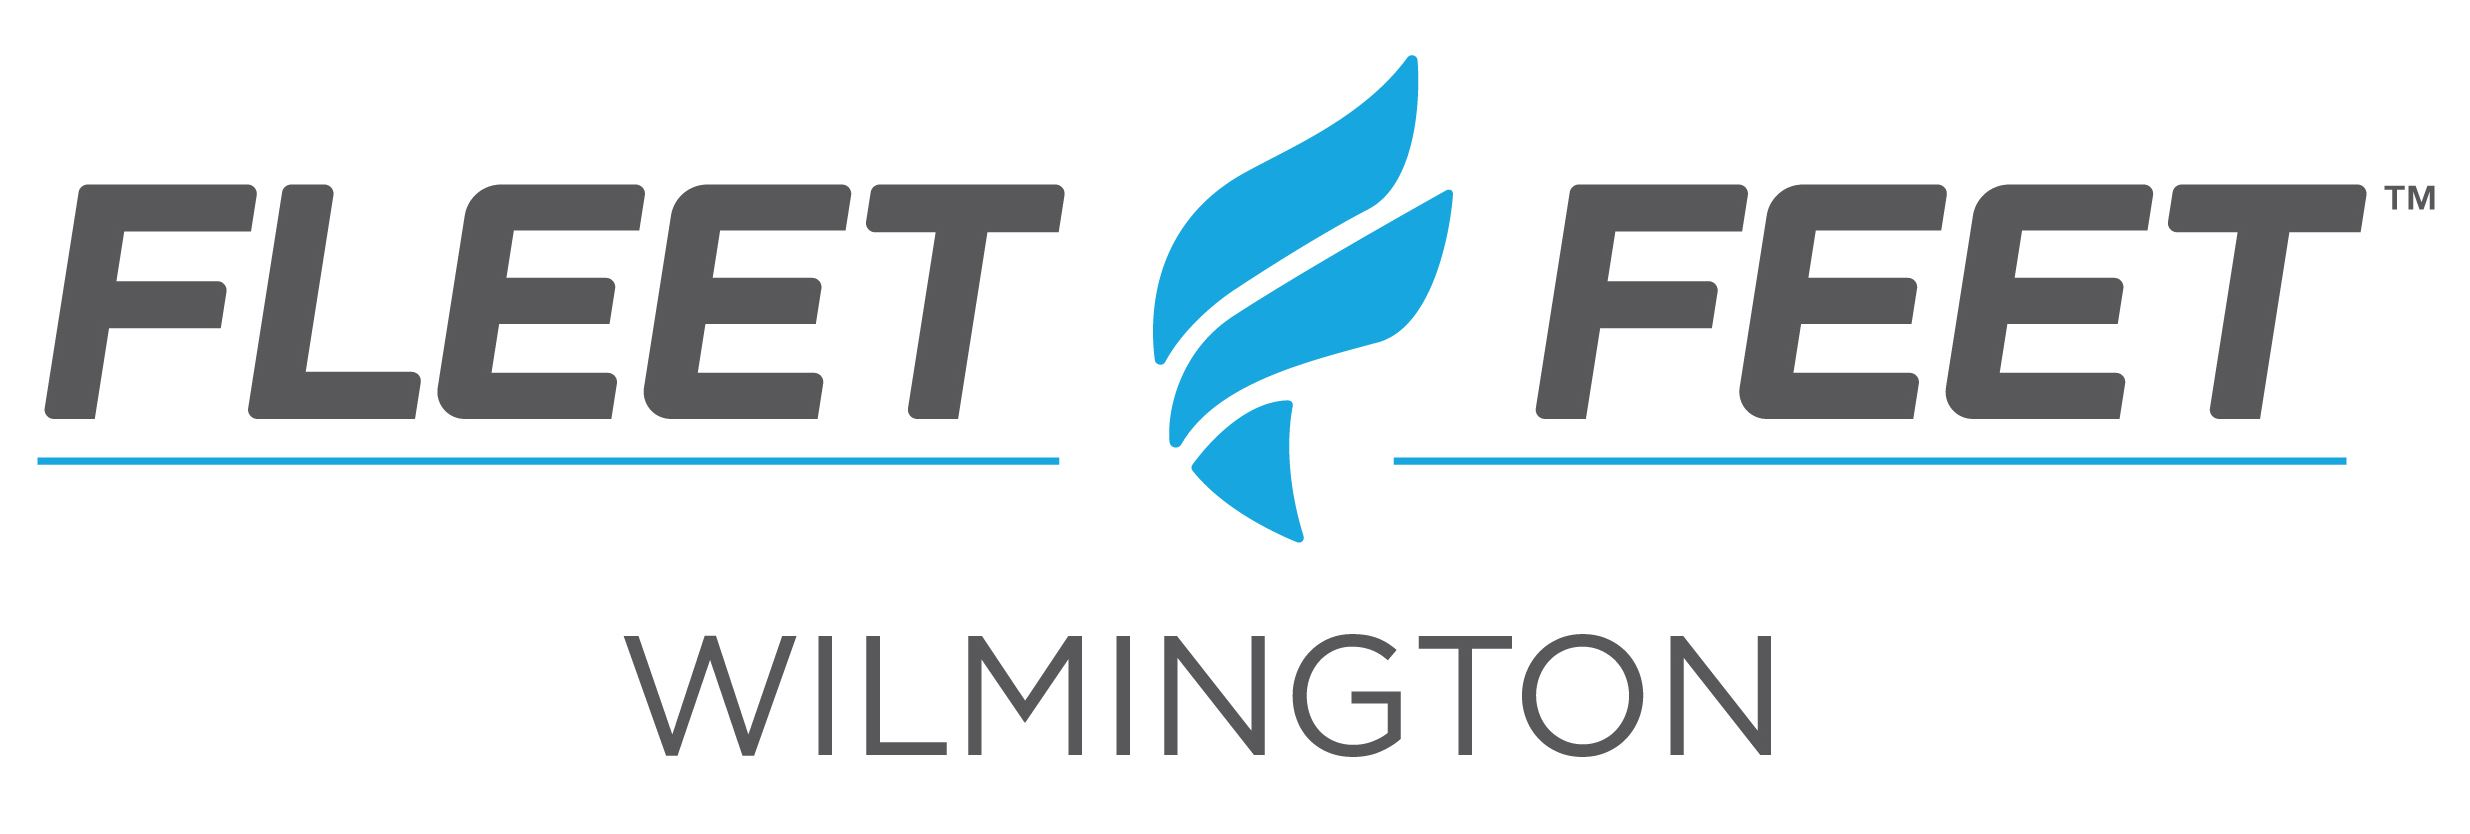 Fleet-Feet_Logo_Wilmington_Color